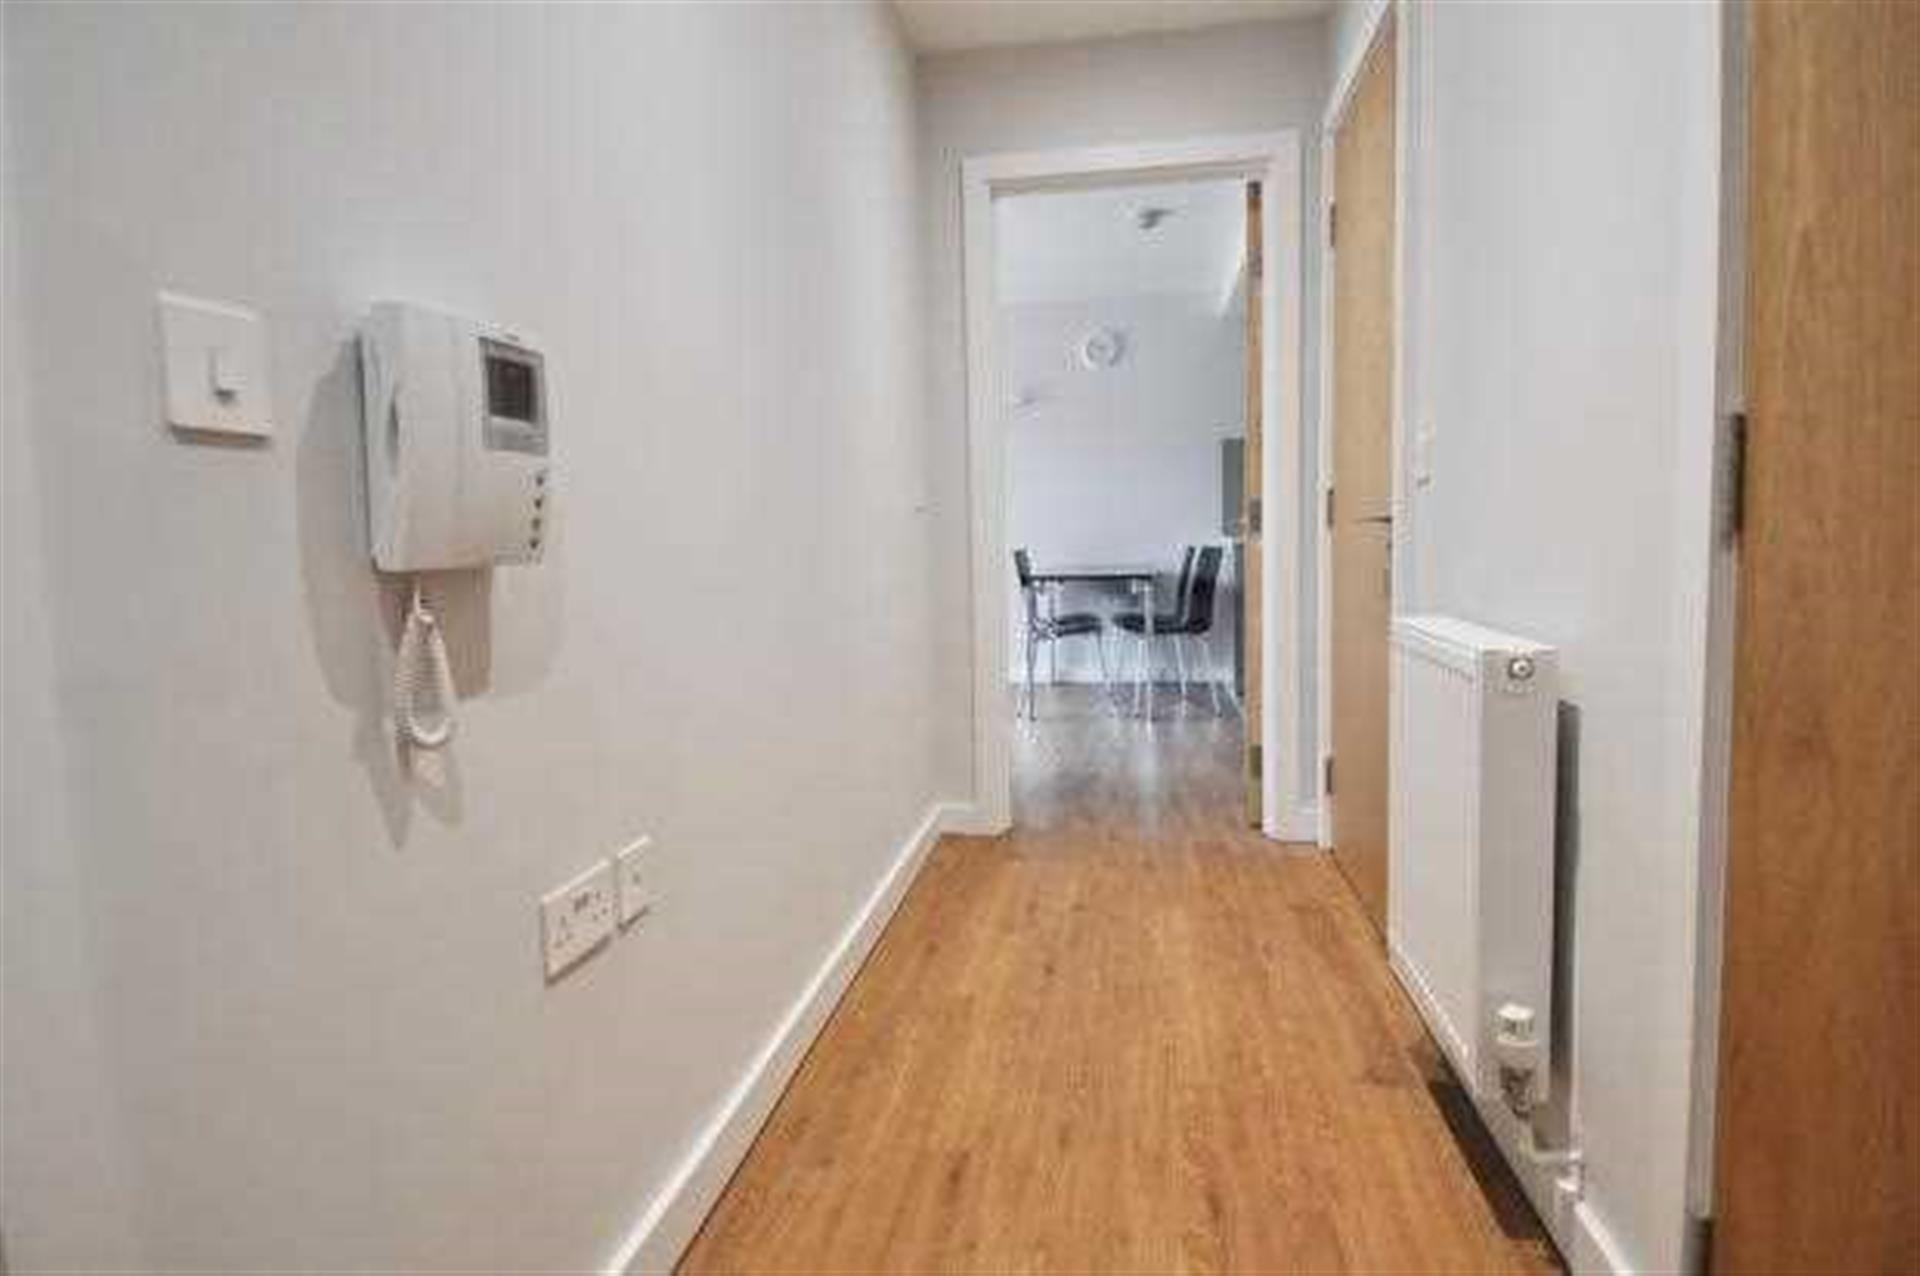 1 Bedroom Apartment Flat / Apartment For Sale - Image 7